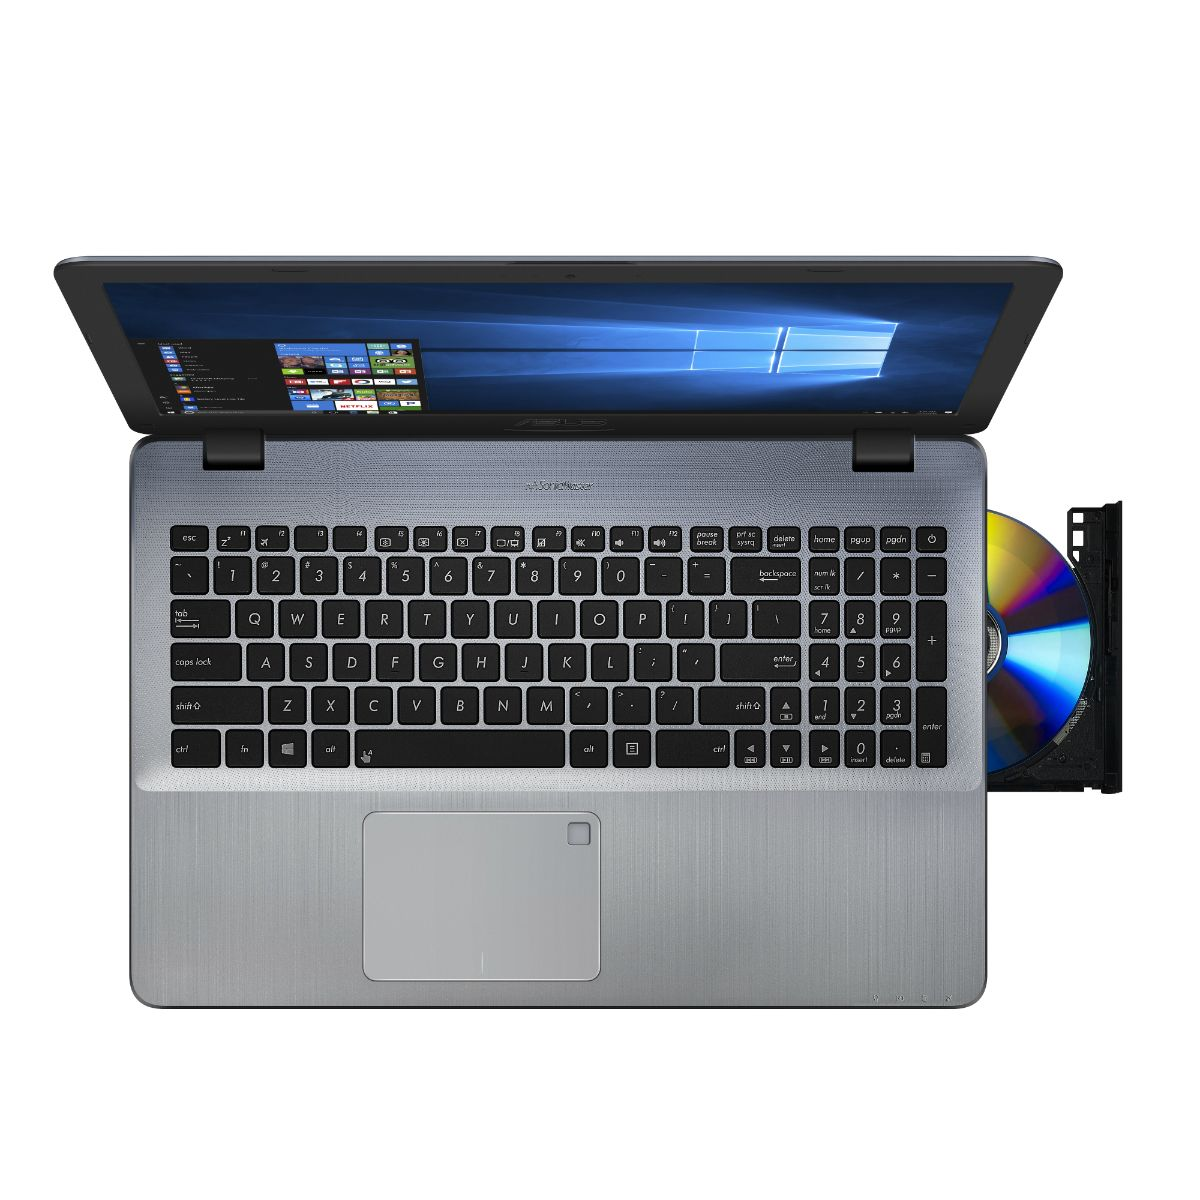 Notebook Asus X542uf-go203t I7 W10 GEFORCE MX130